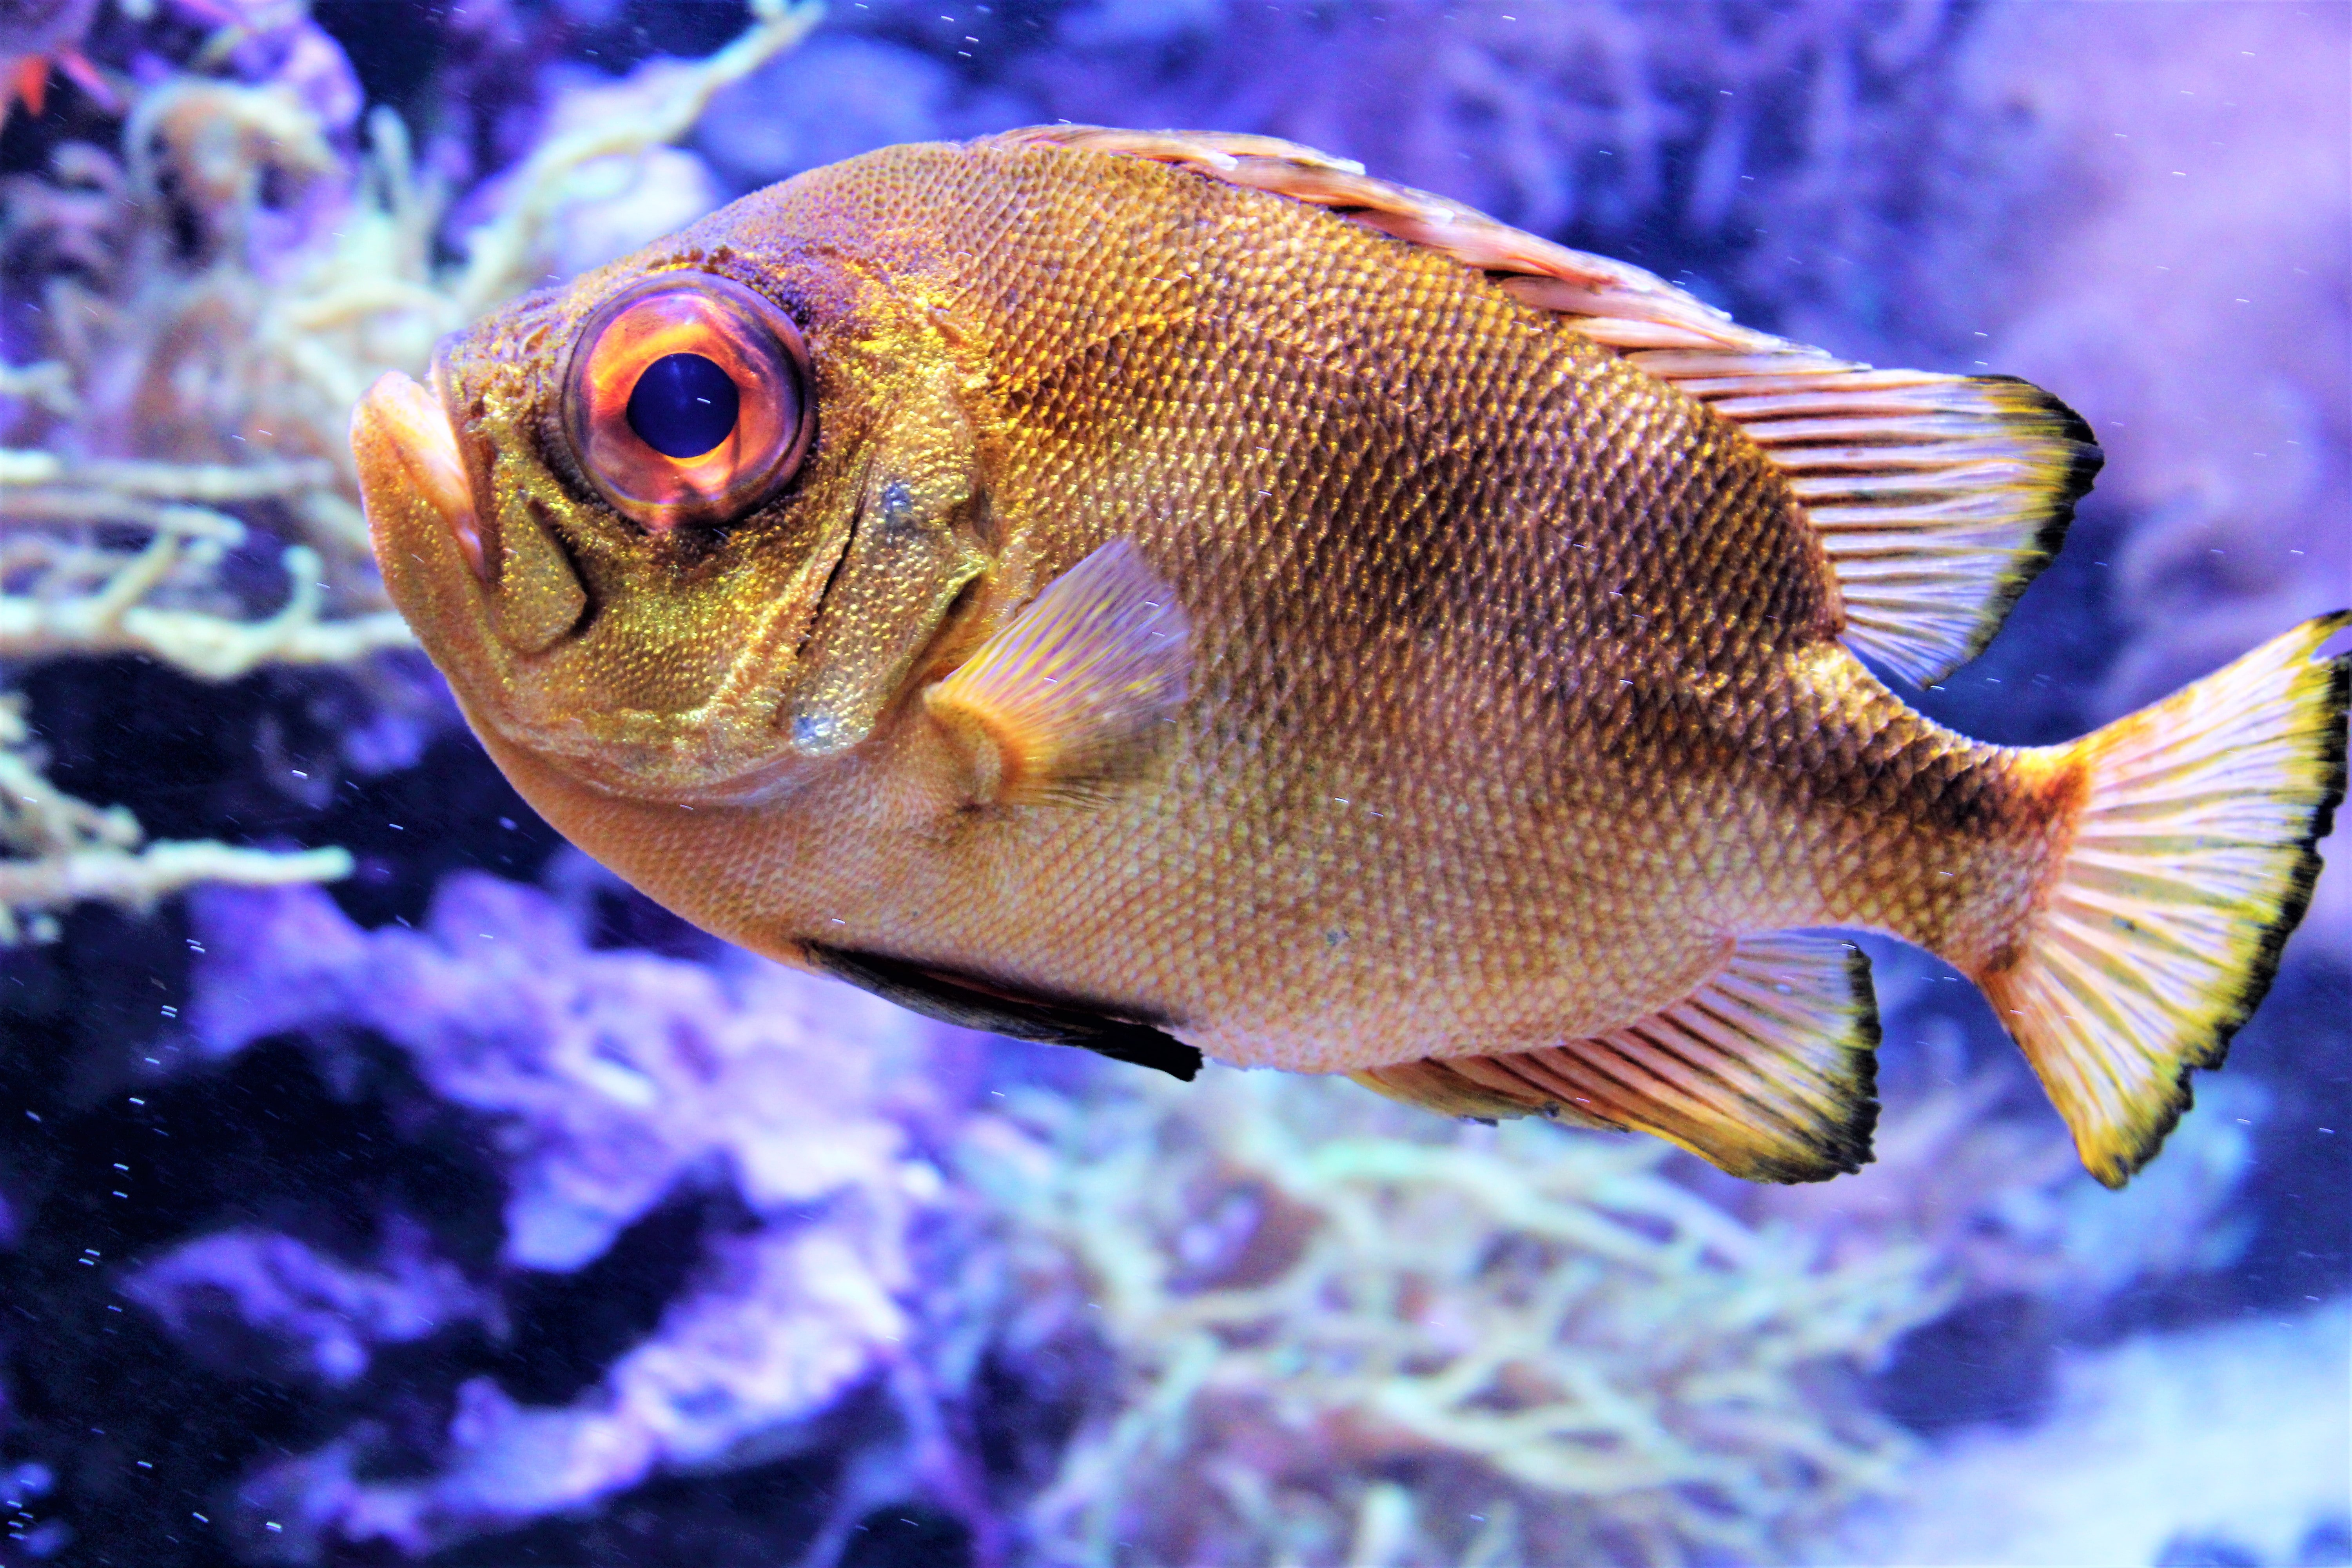 A scaly brown fish, photo courtesy of Mika Brandt on Unsplash.